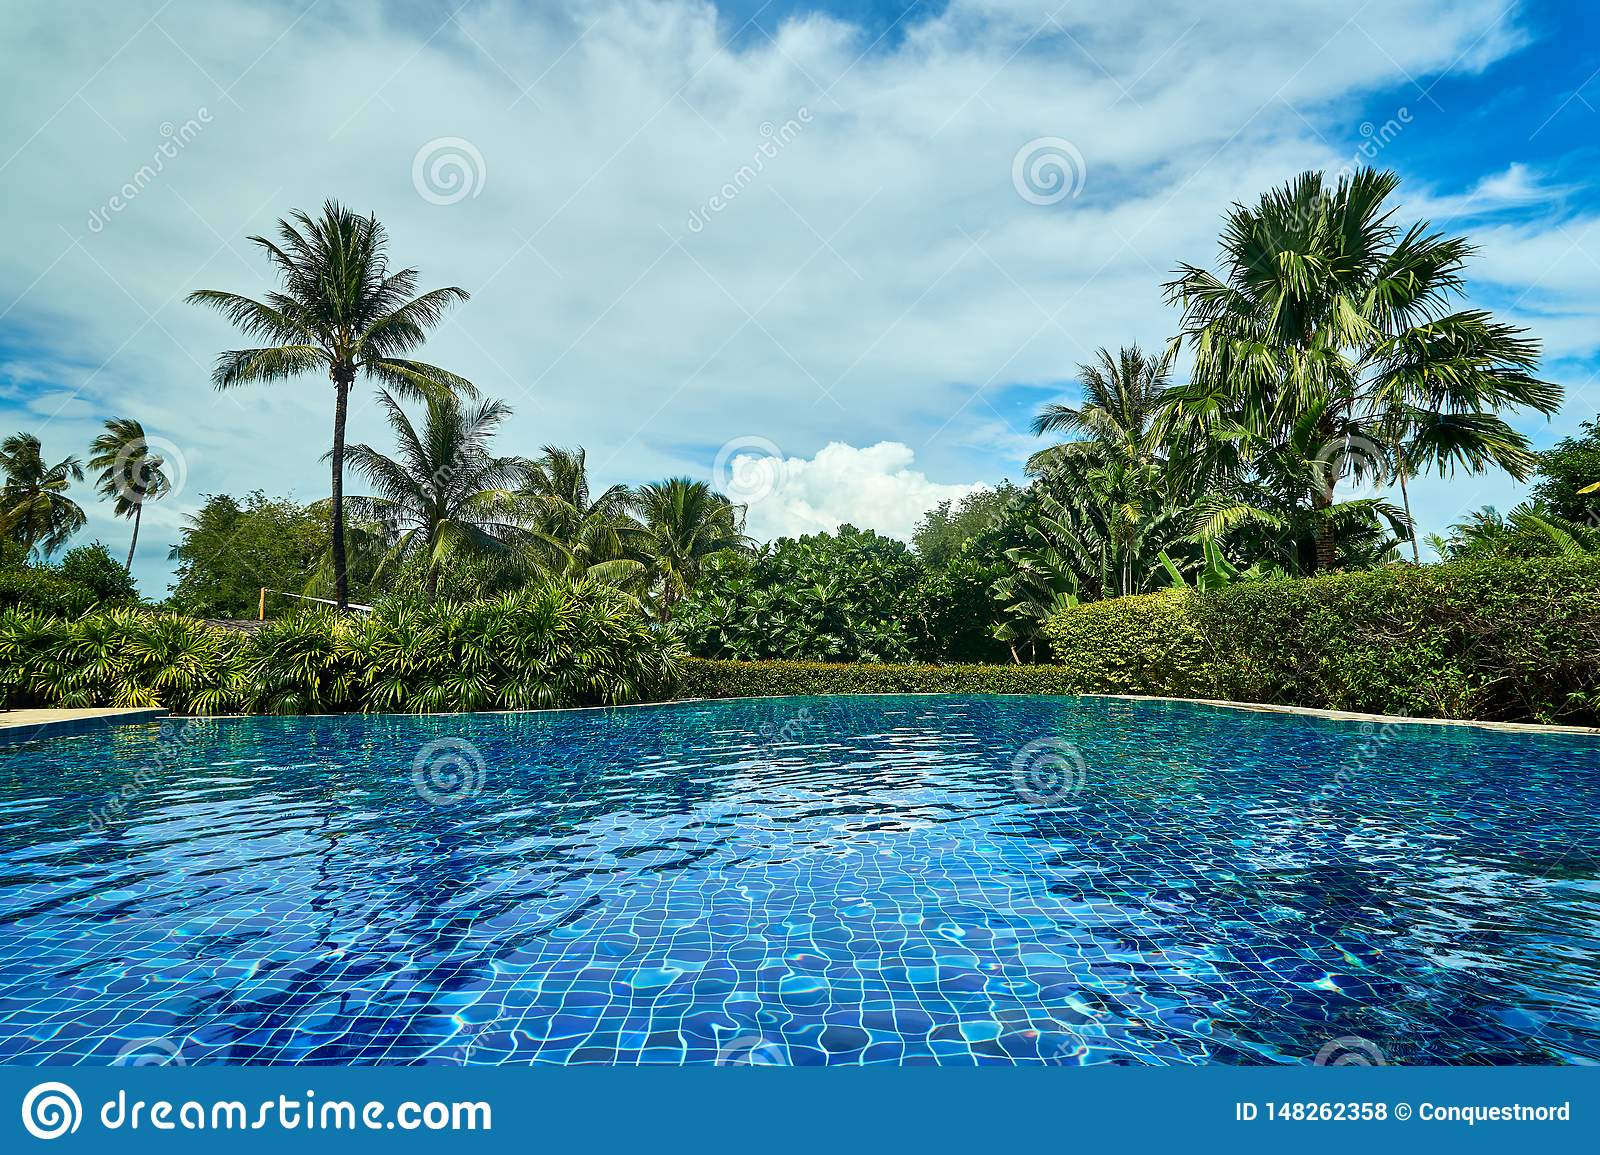 Outstandidng-Ansicht des Swimmingpools in Thailand